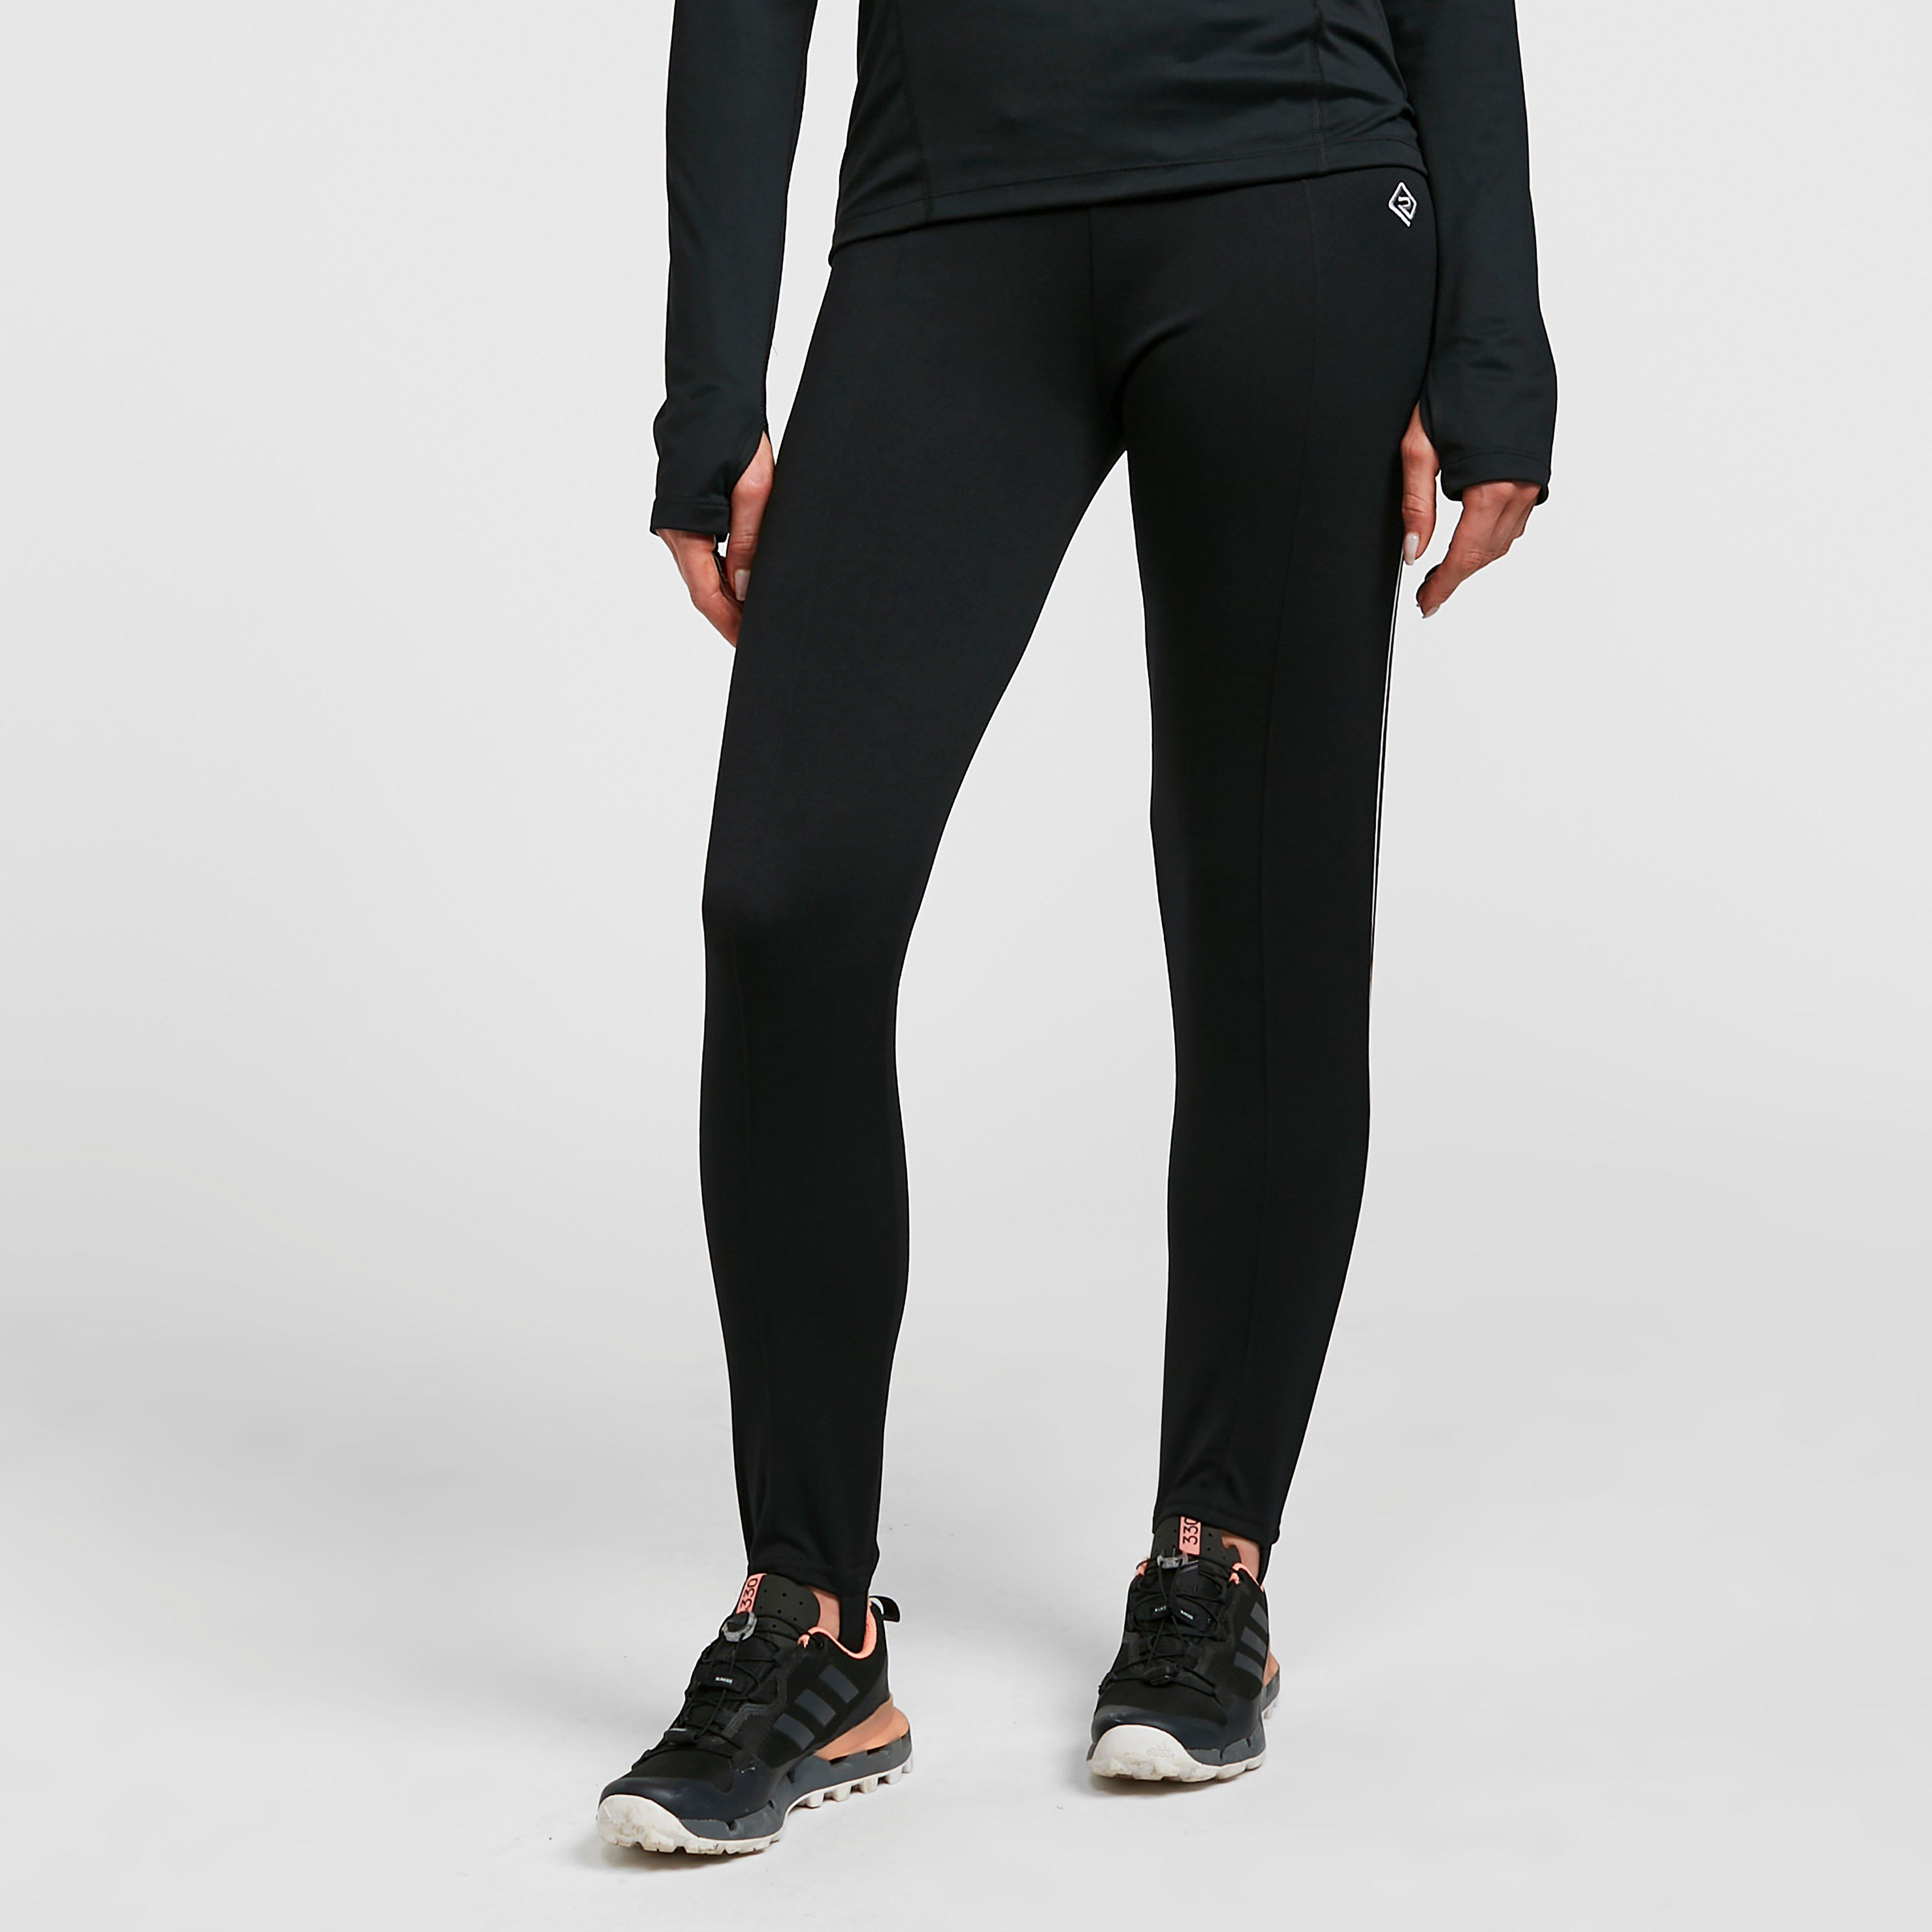 Ronhill Ronhill womens Trackster Classic Running Tights, Black